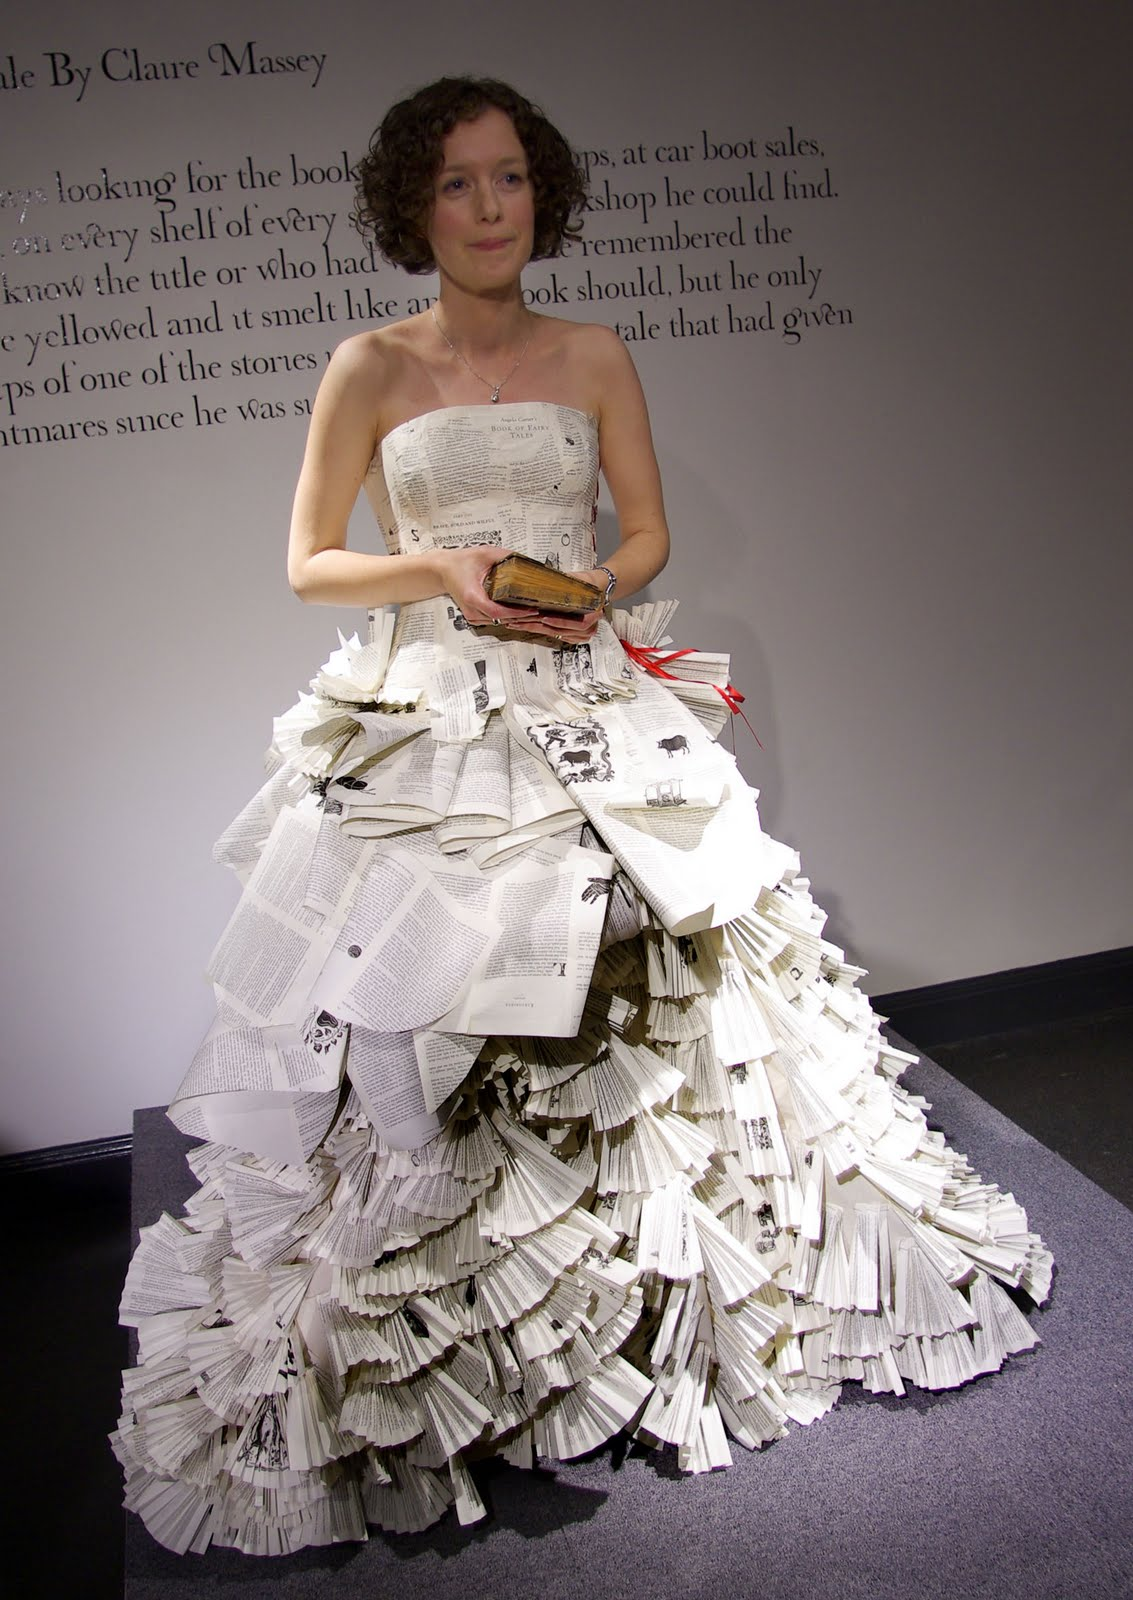 Dress Made From Book Pages